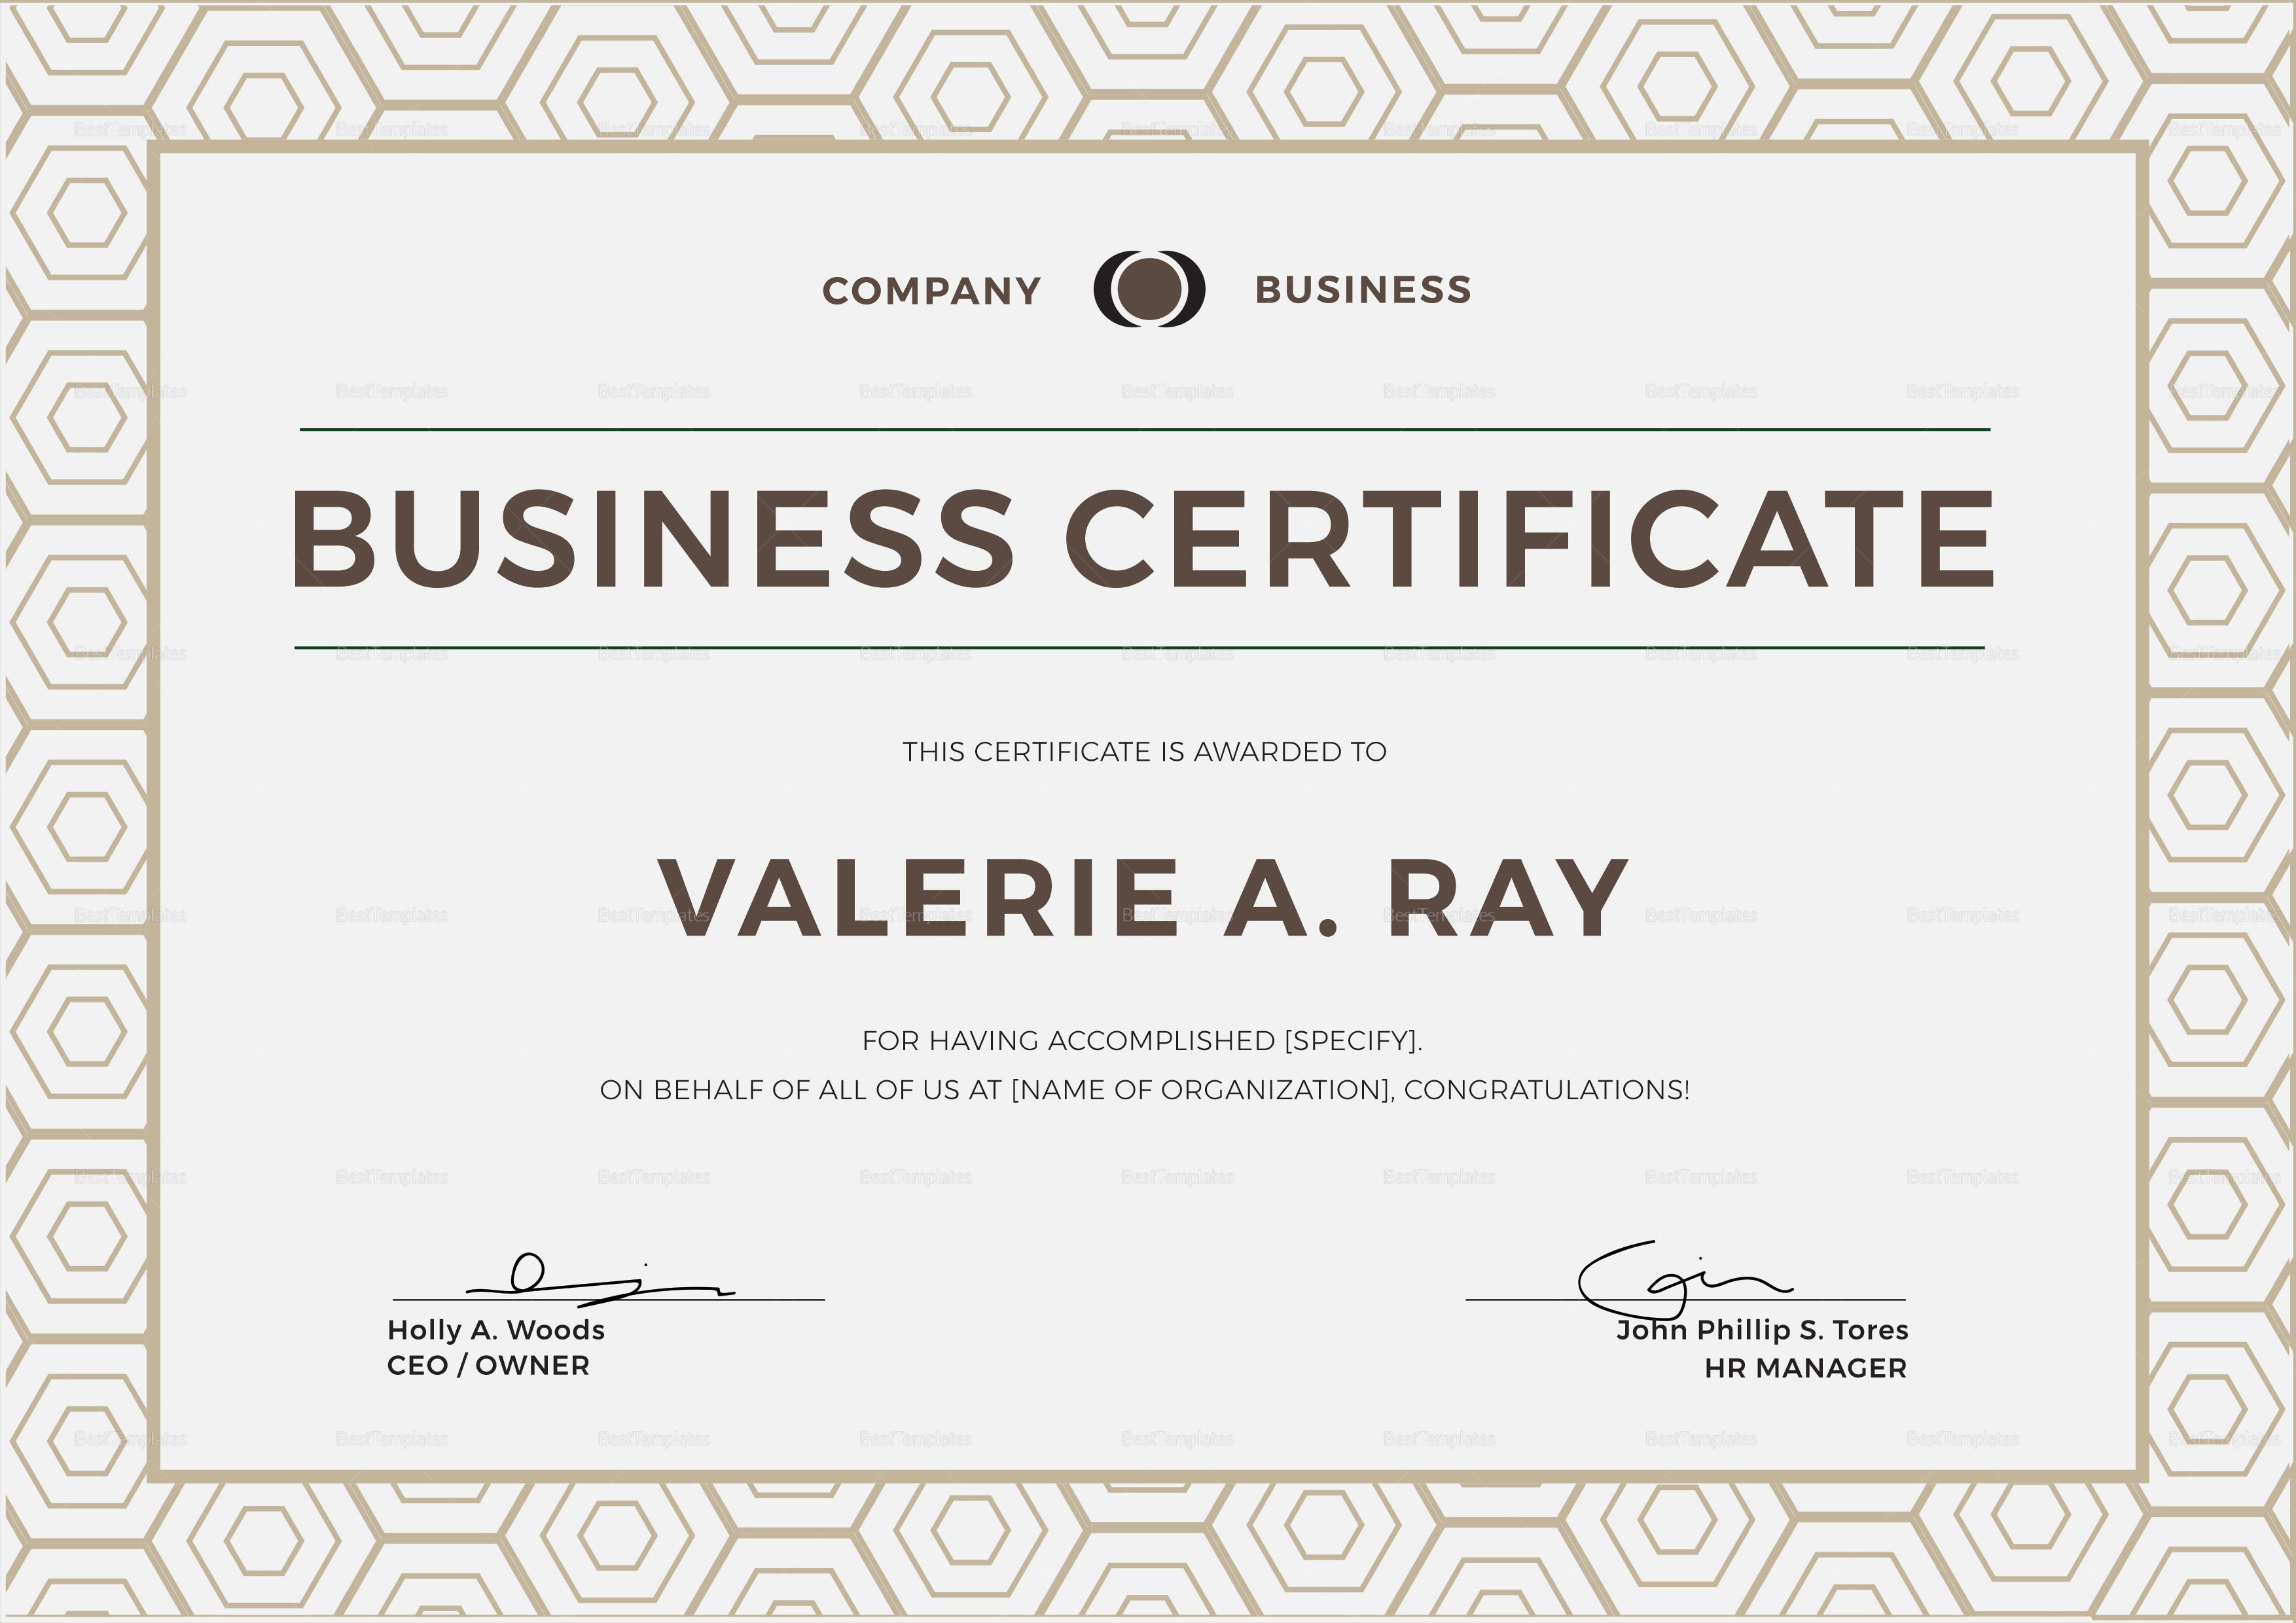 Sample Business Certificate Template